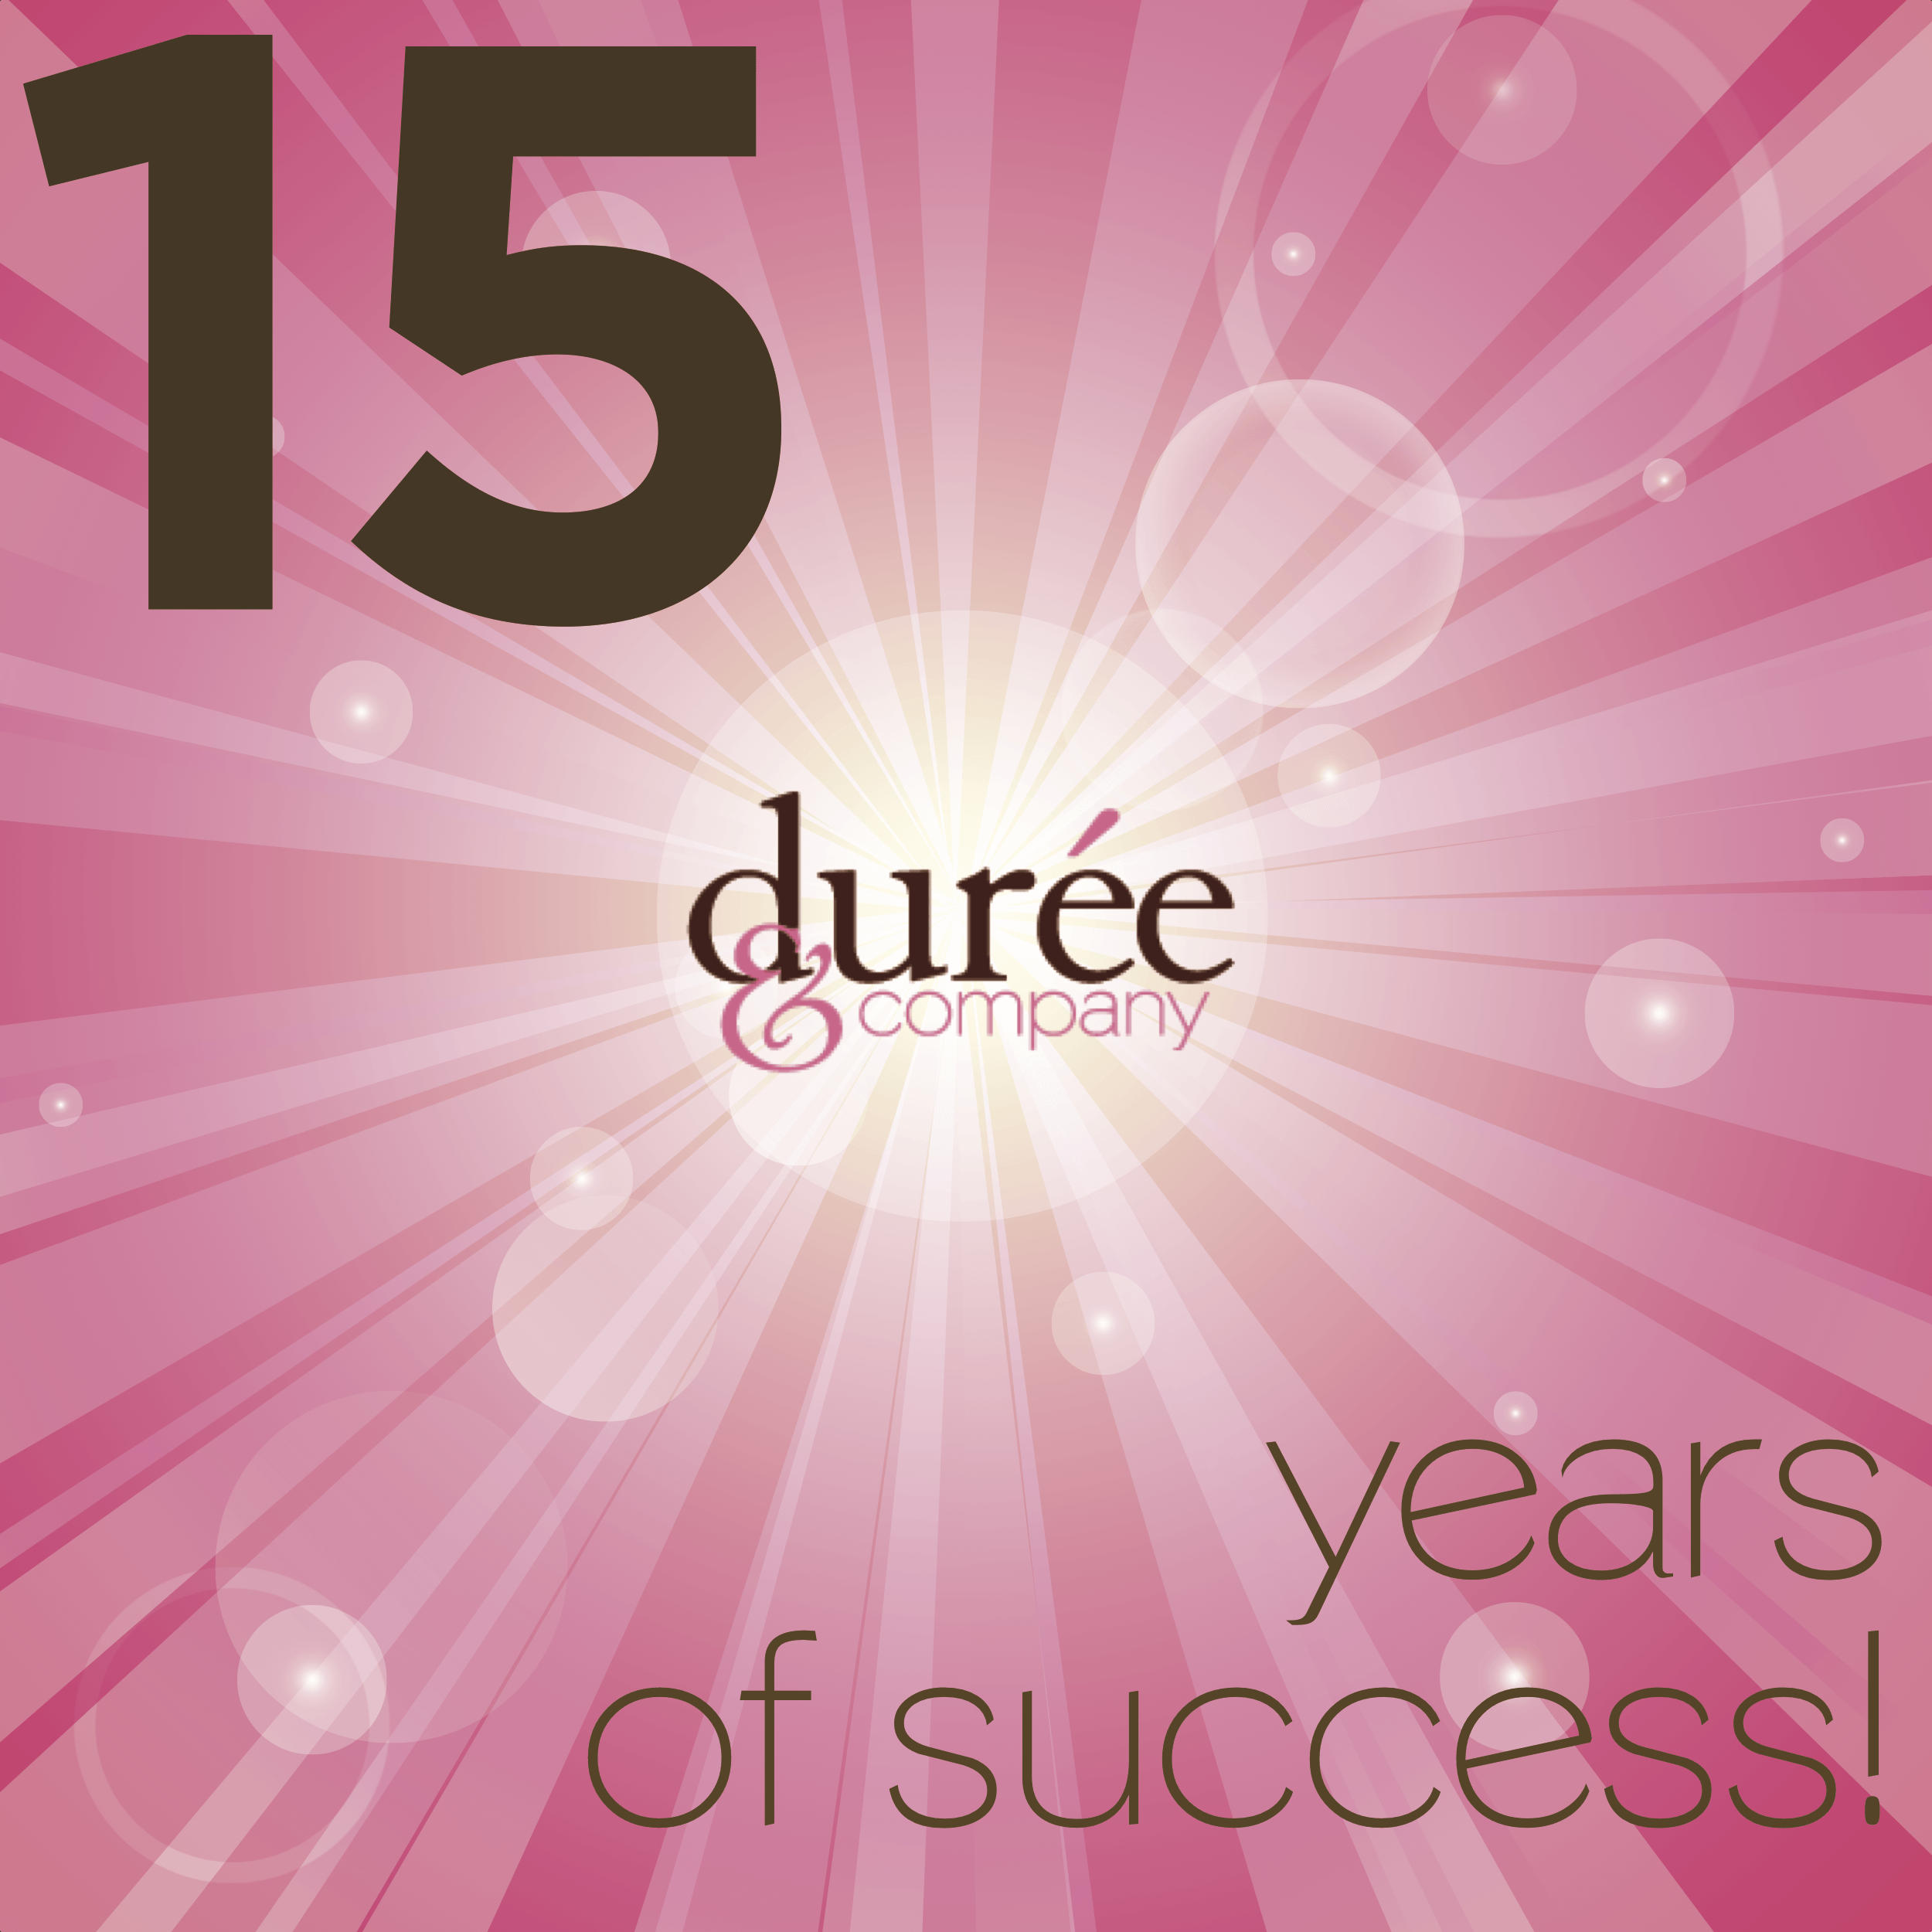 Durée and company 15 years old success